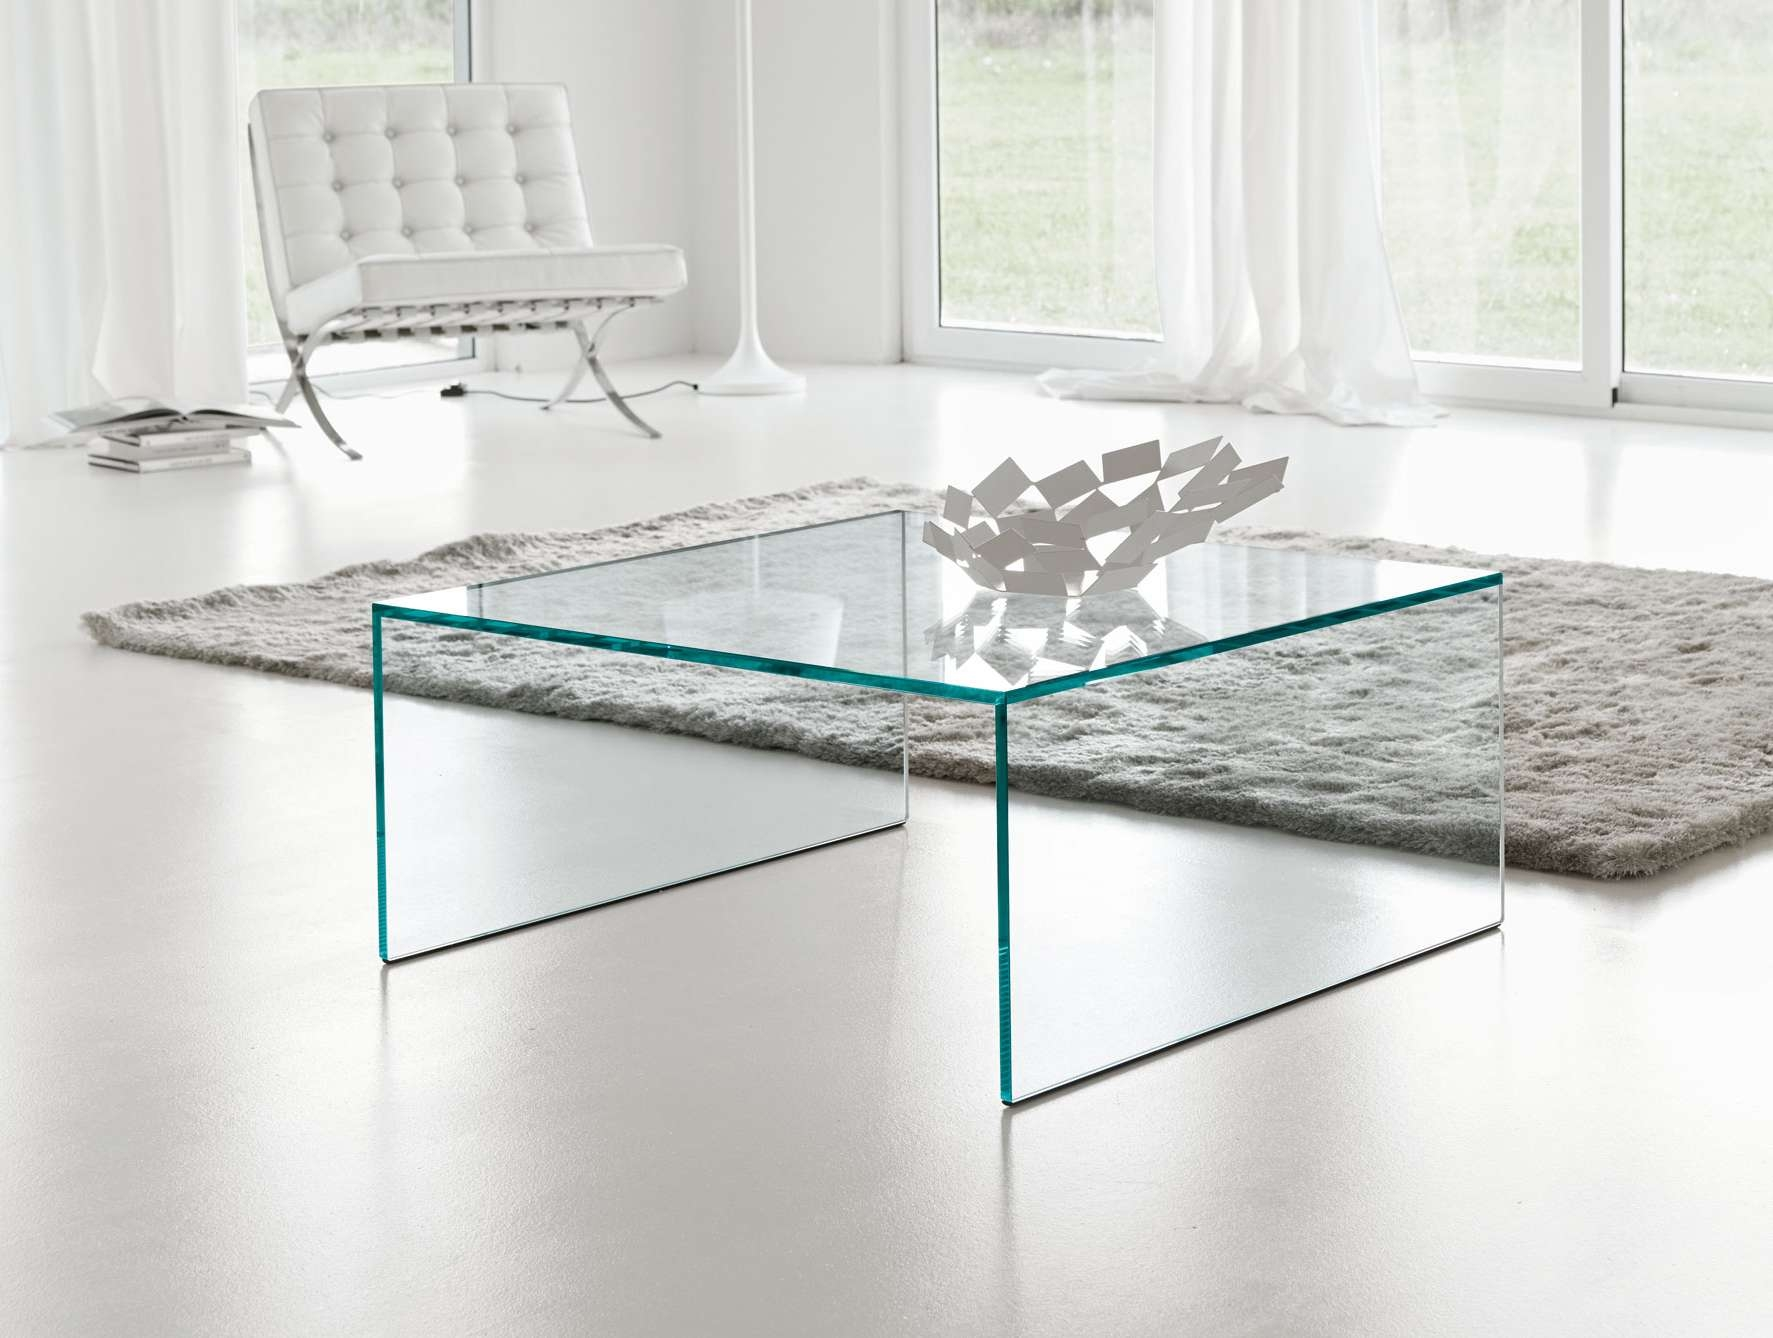 Nella Vetrina Tonelli Eden Modern Italian Square Coffee Table Throughout Famous Glass Square Coffee Tables (View 14 of 20)